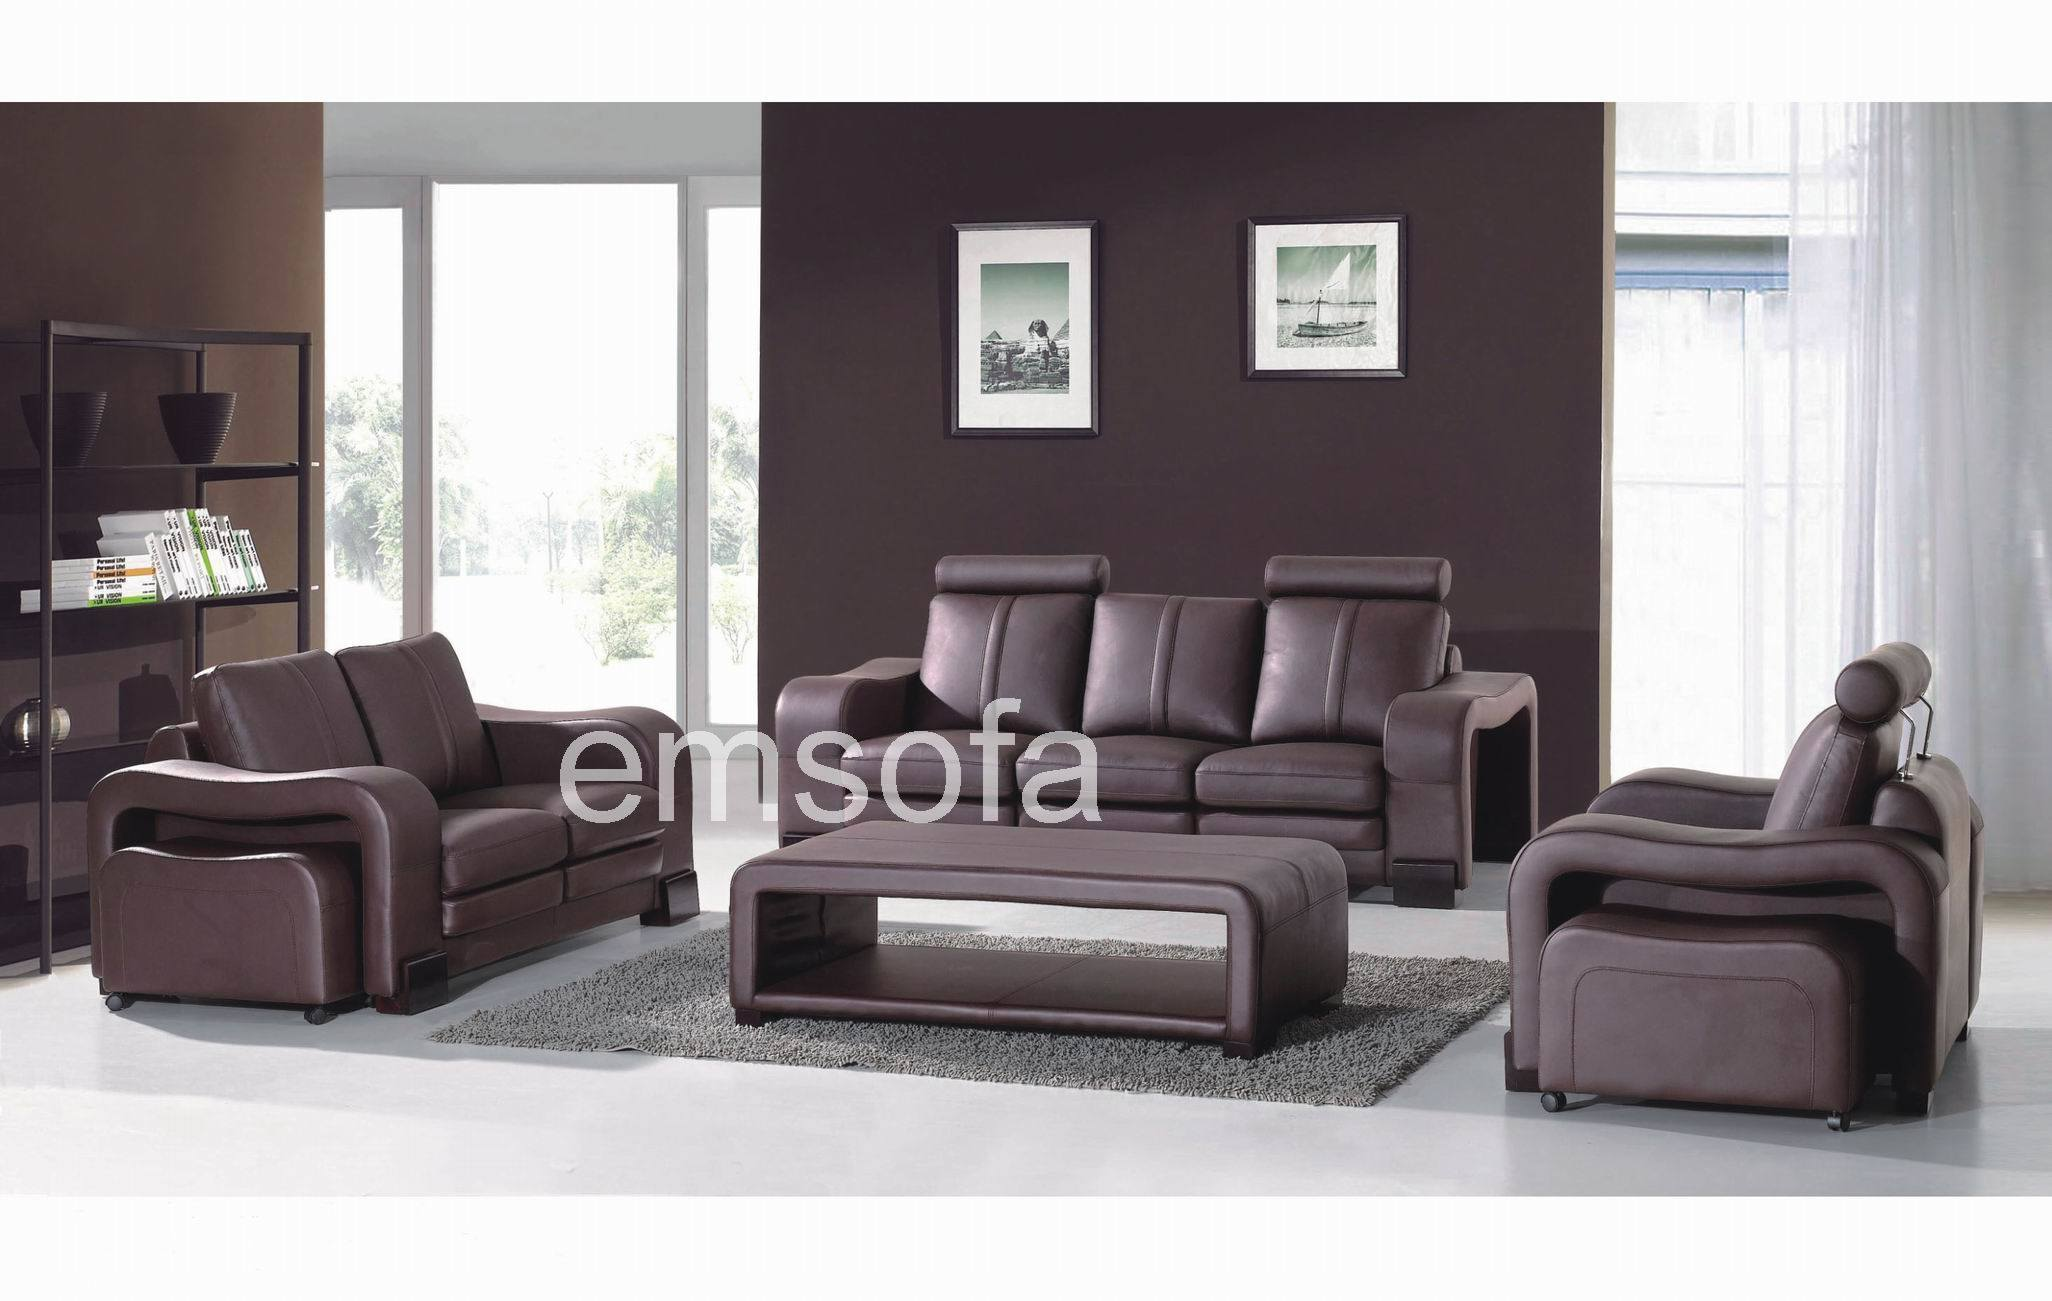 TM670 Modern Sofa Set - China Sofa, Modern Sofa